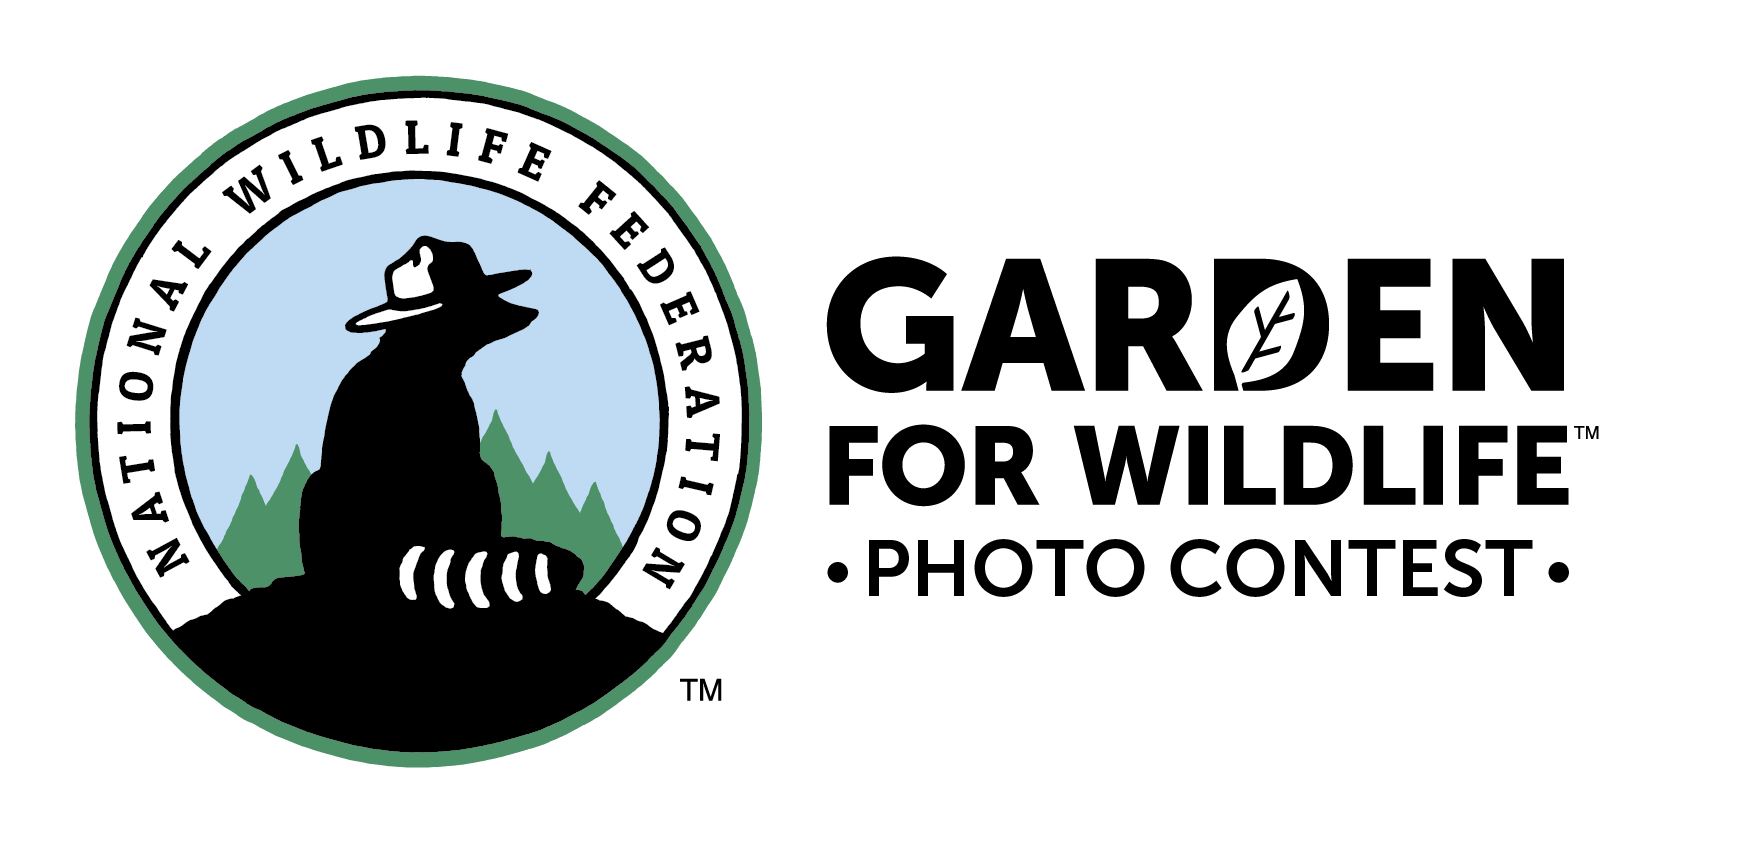 National Wildlife Federation's Garden for Wildlife Photo Contest - logo